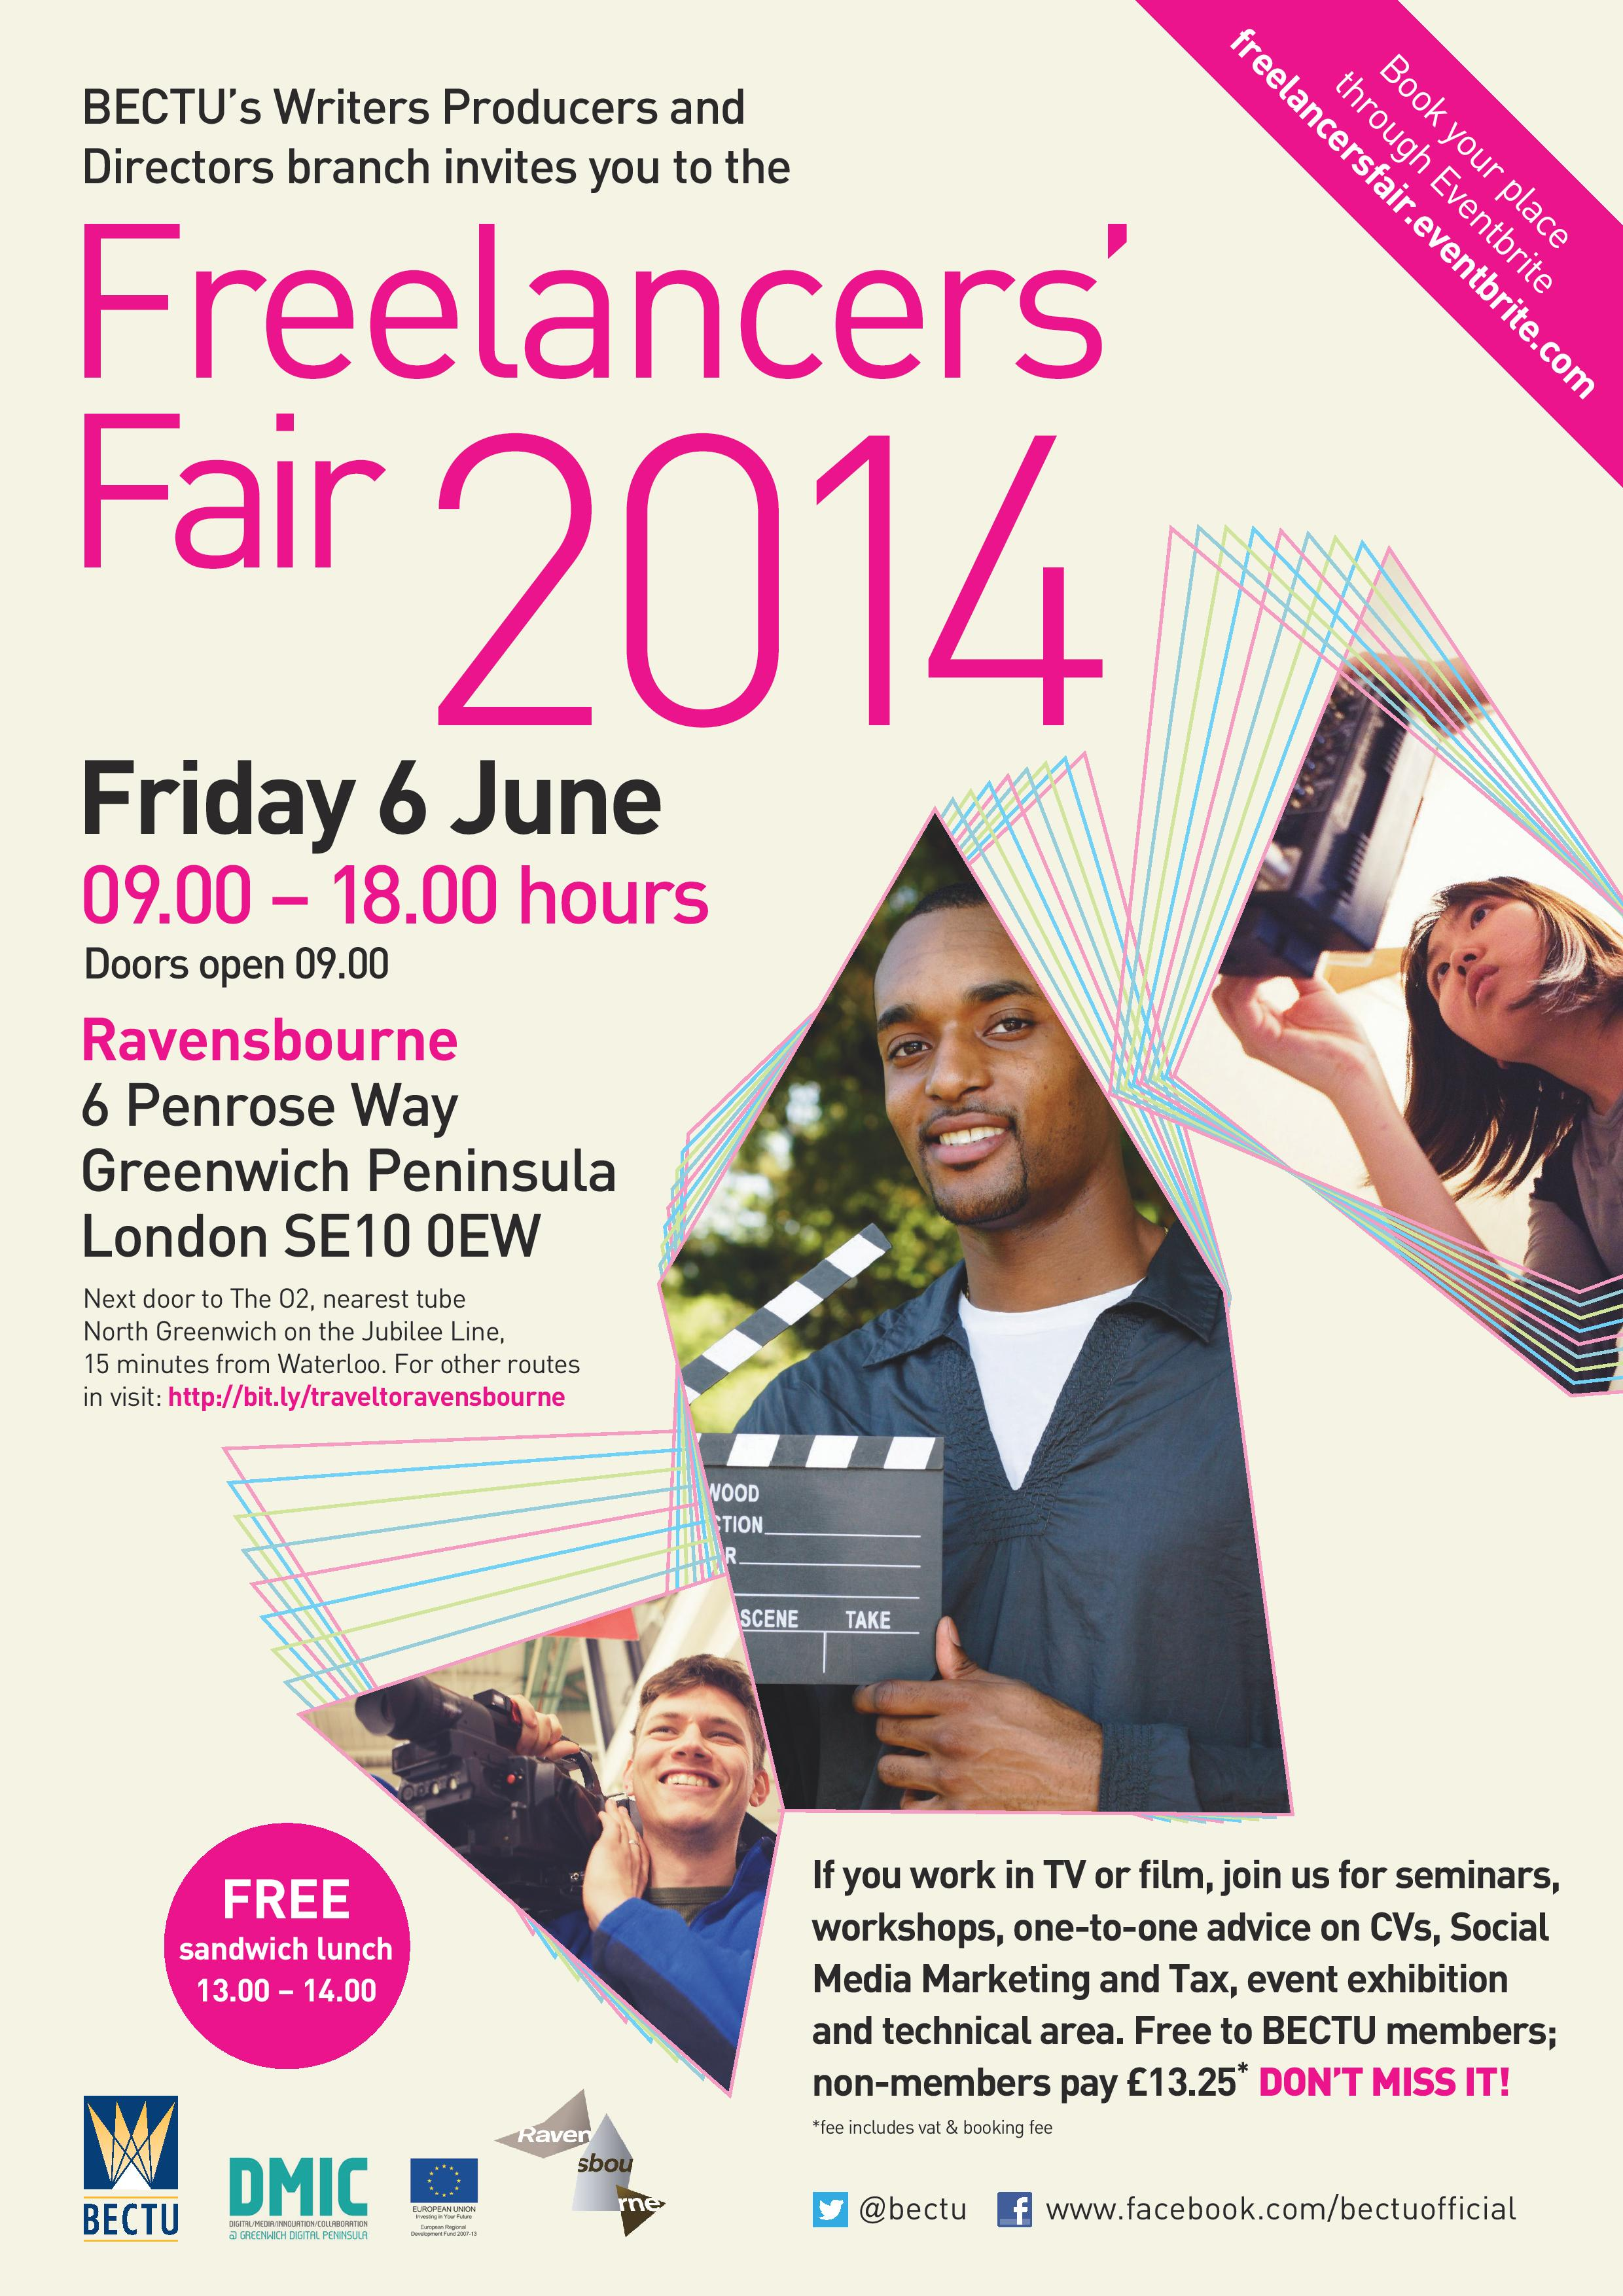 1freelancersfair2014programmeflyer1may2014-page-001